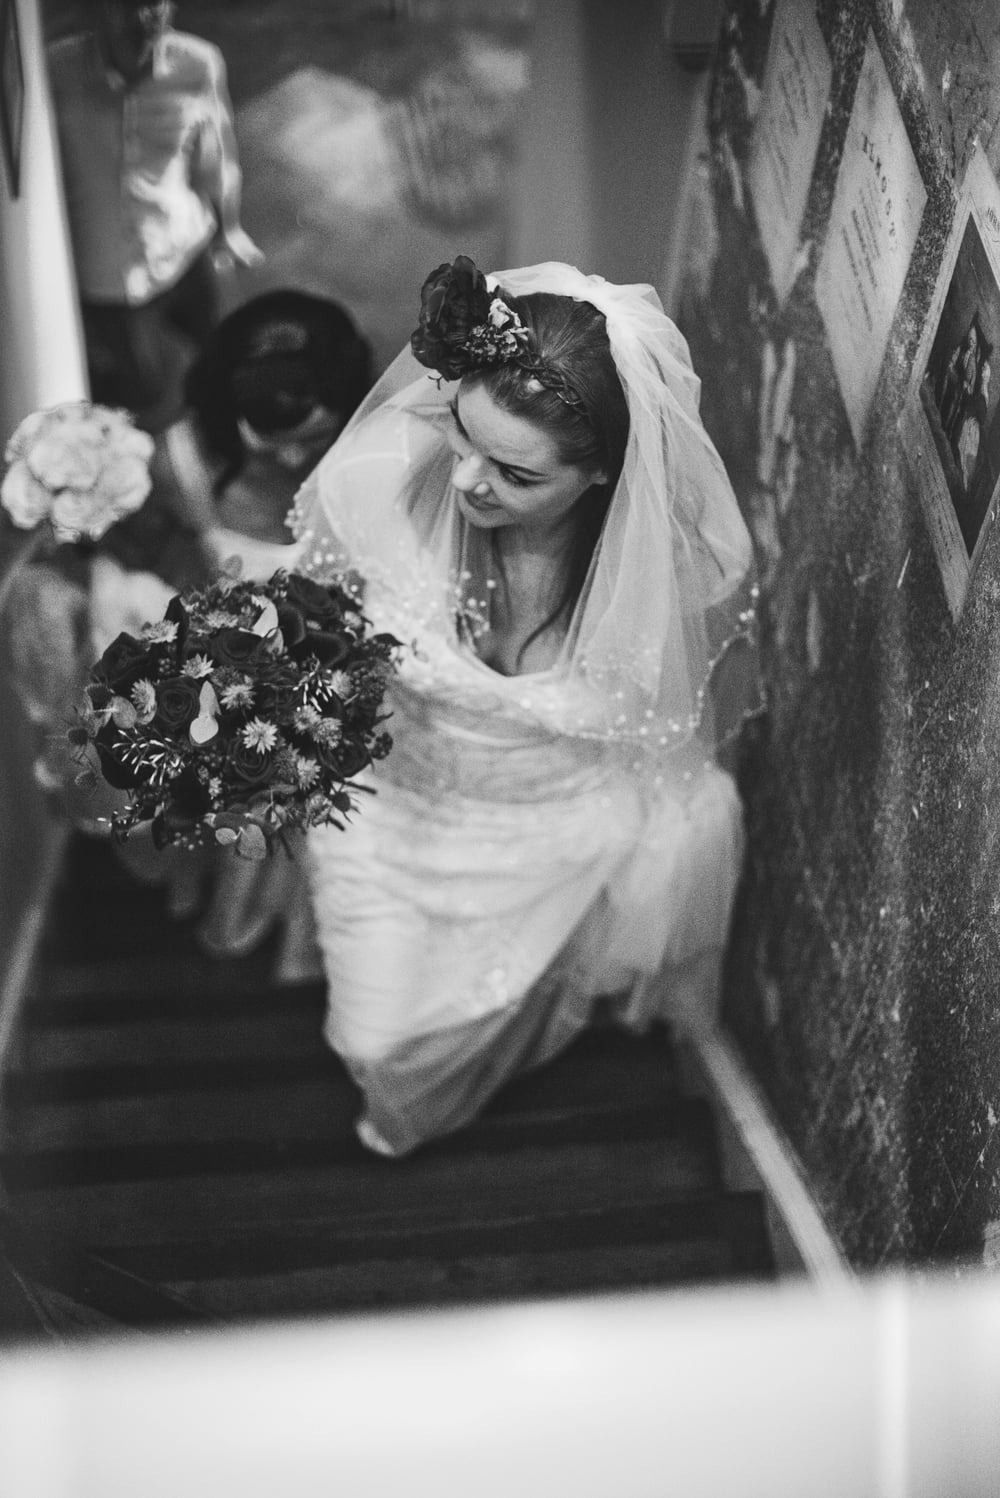 Vintage Christmas London Pub Wedding Essex UK Documentary Wedding Photographer